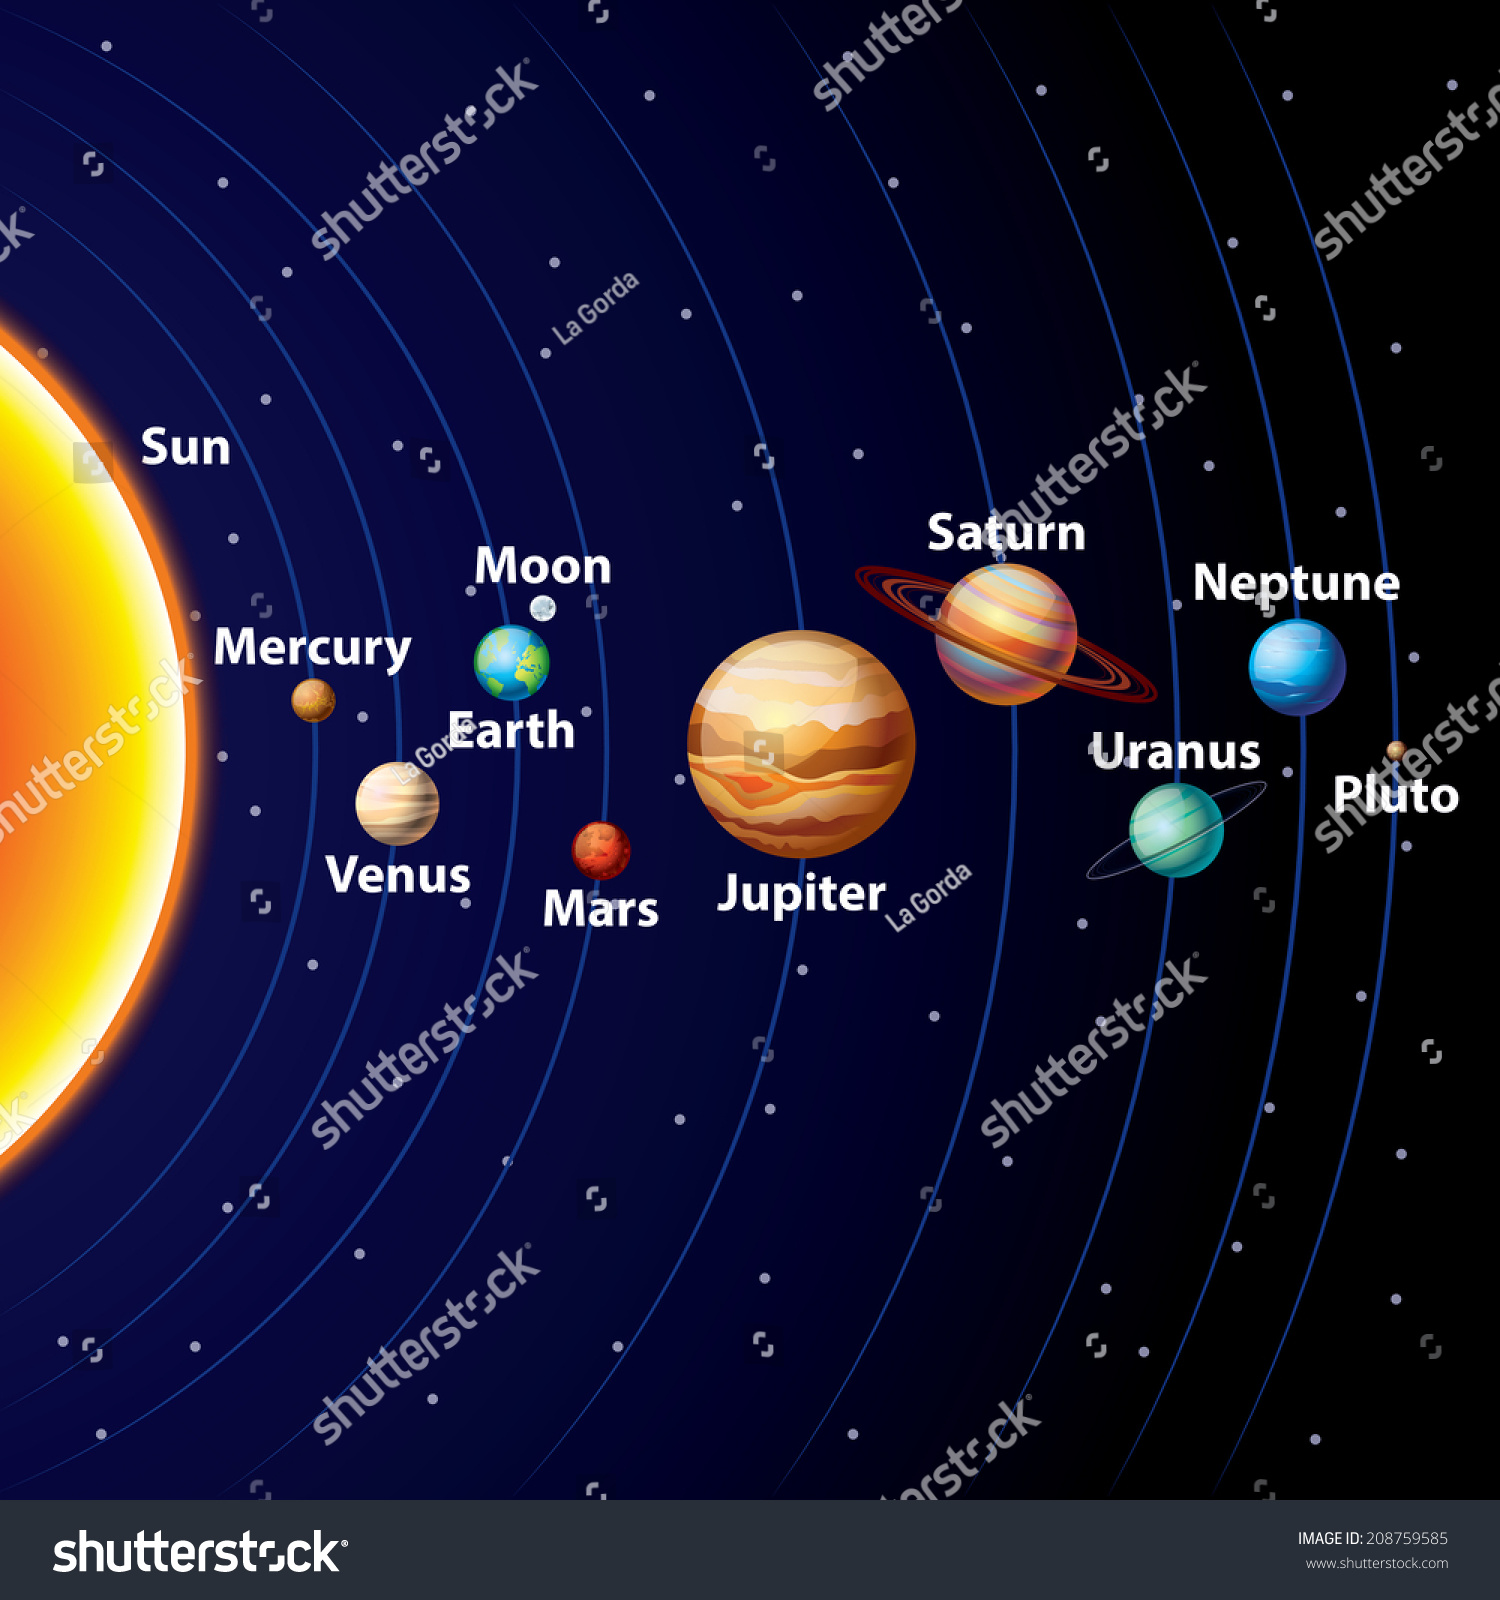 Facts About Jupiter  Our Solar System  Astronomy for Kids